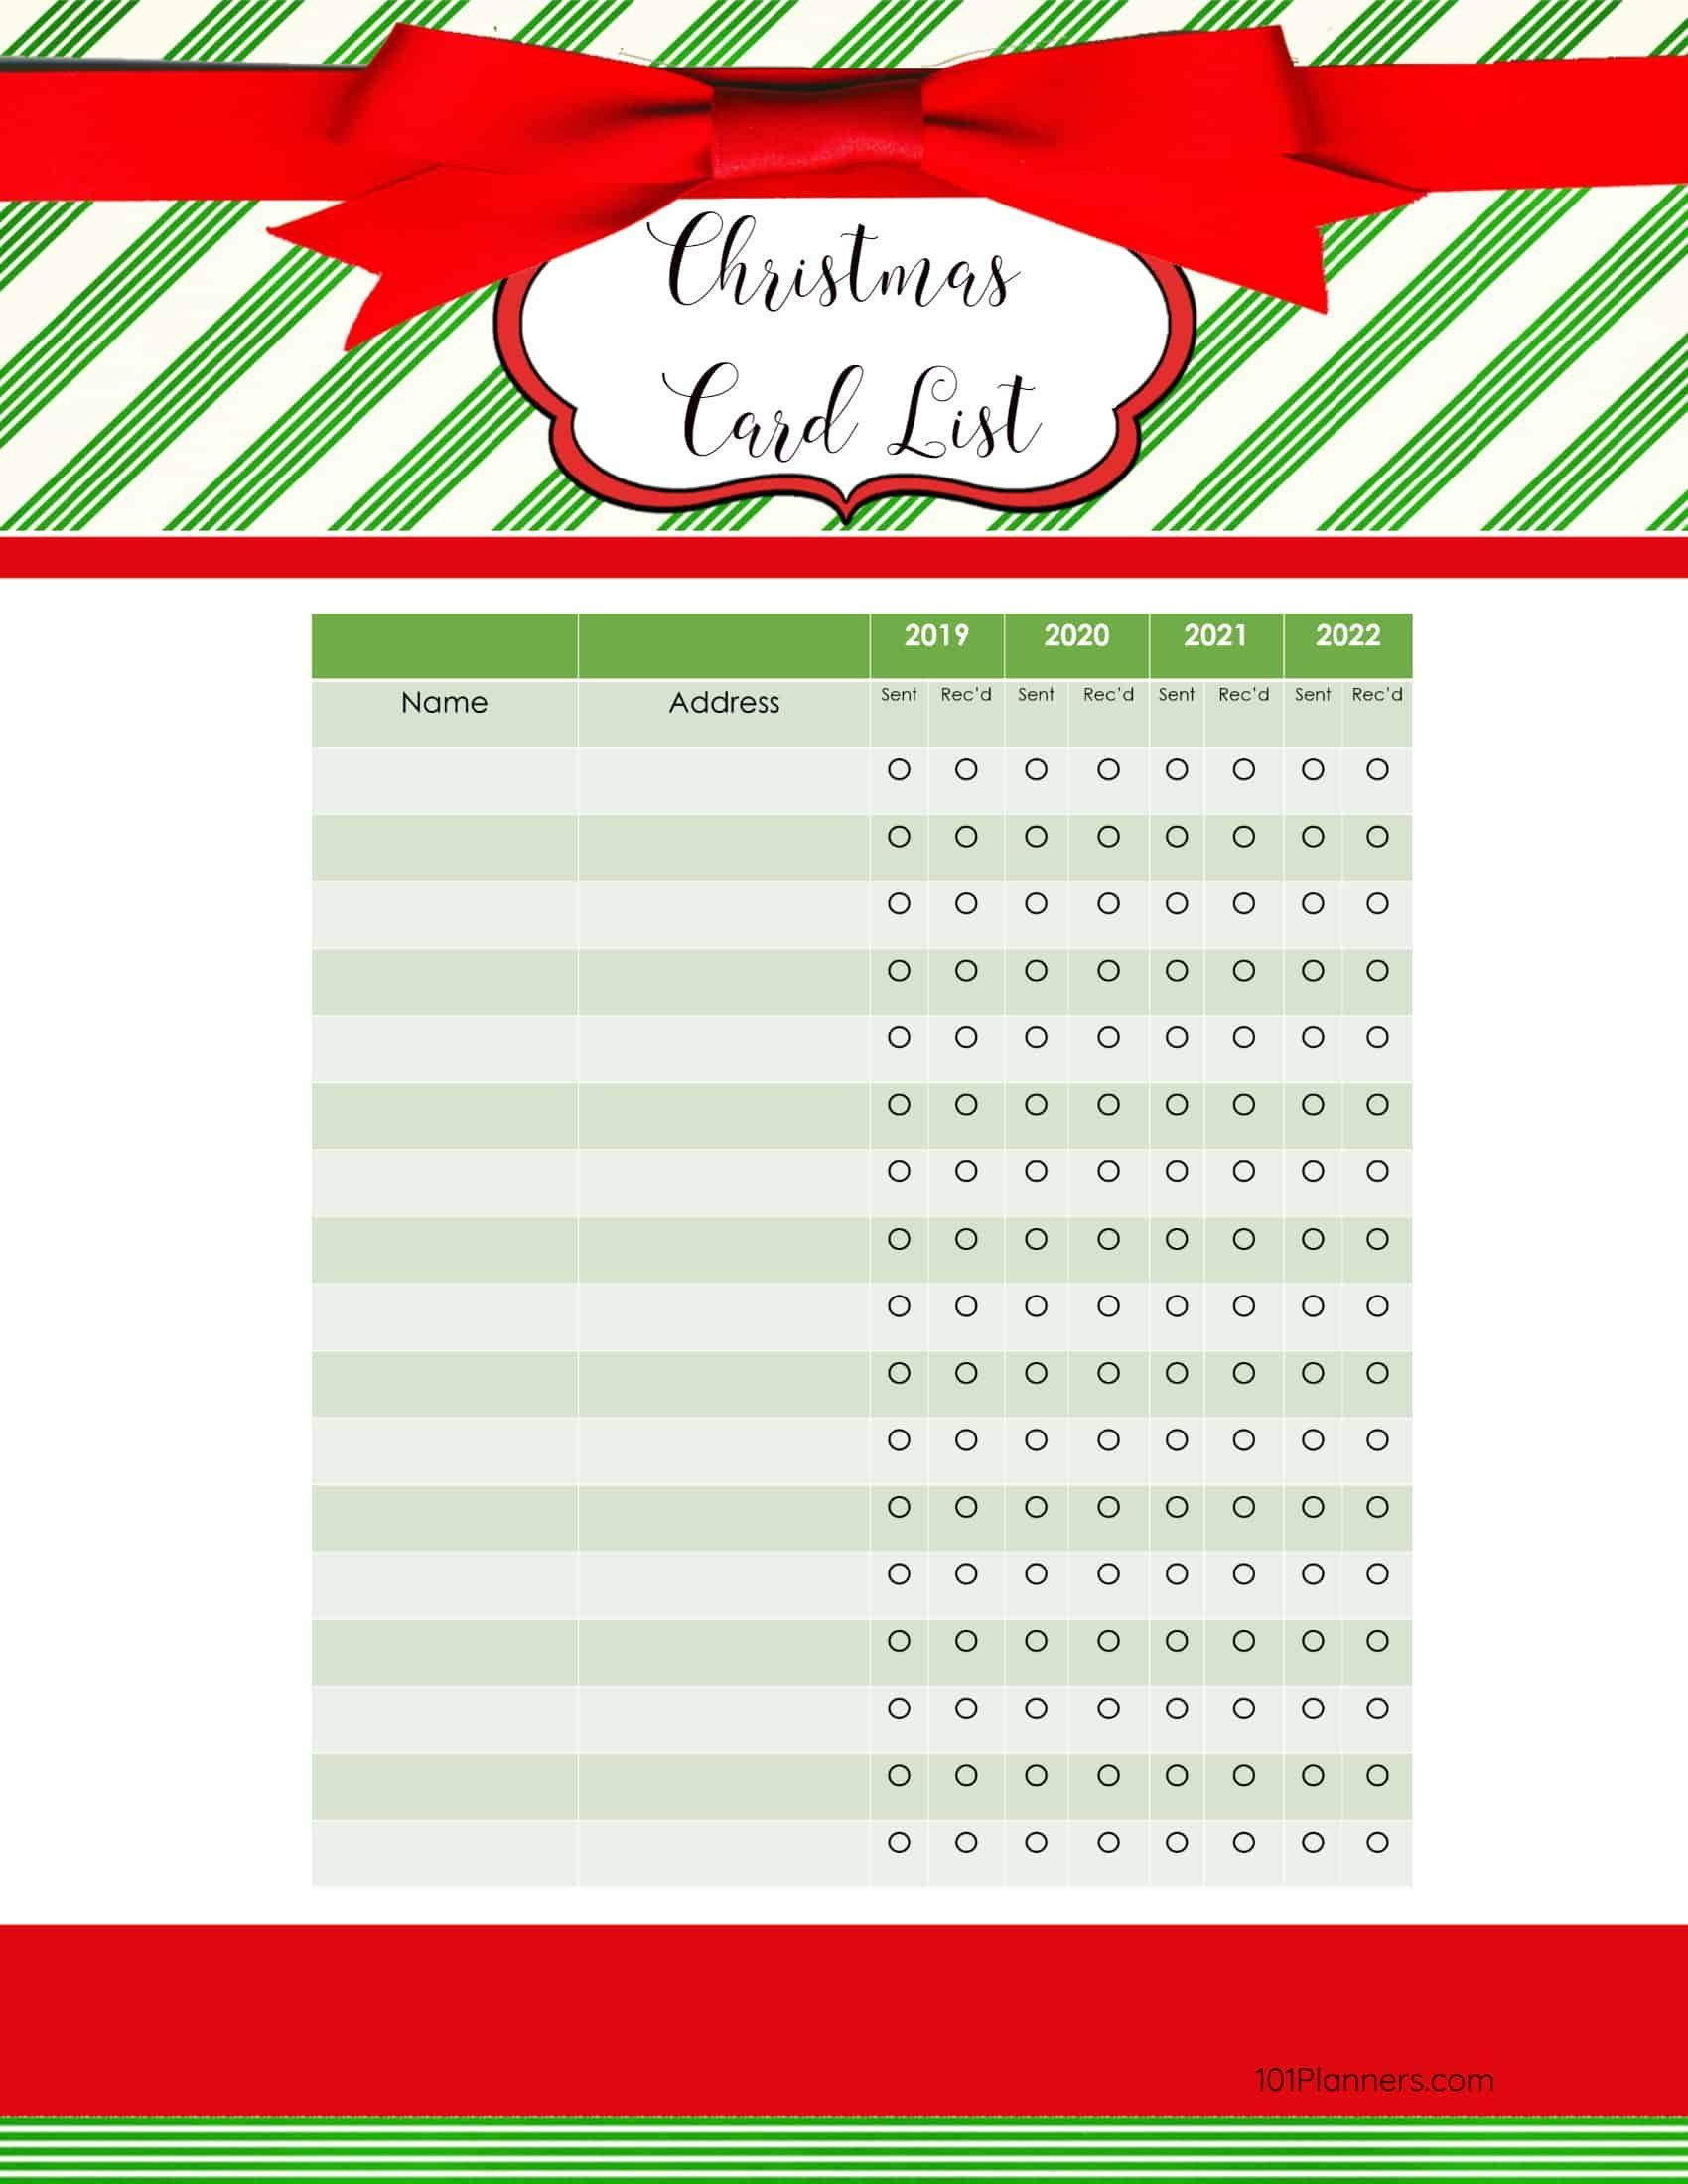 Templates For Christmas Cards Elegant Free Printable Christmas Gift List Template Free Christmas Printables Christmas List Template Christmas Note Cards